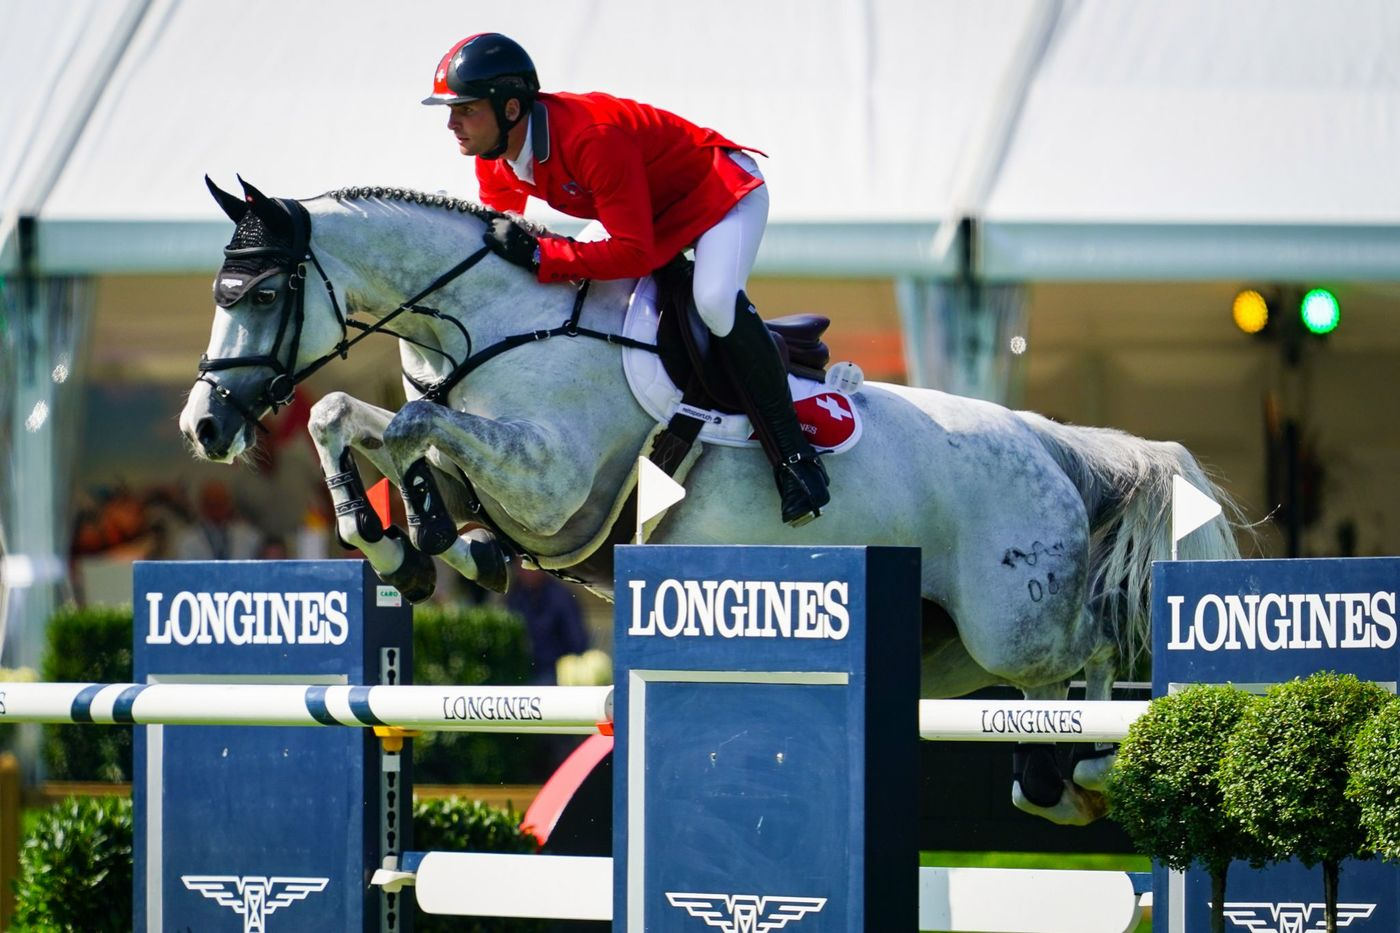 Longines Show Jumping Event: Europe's pre-eminent riders secured victories at the Longines FEI Jumping European Championship 2021   3